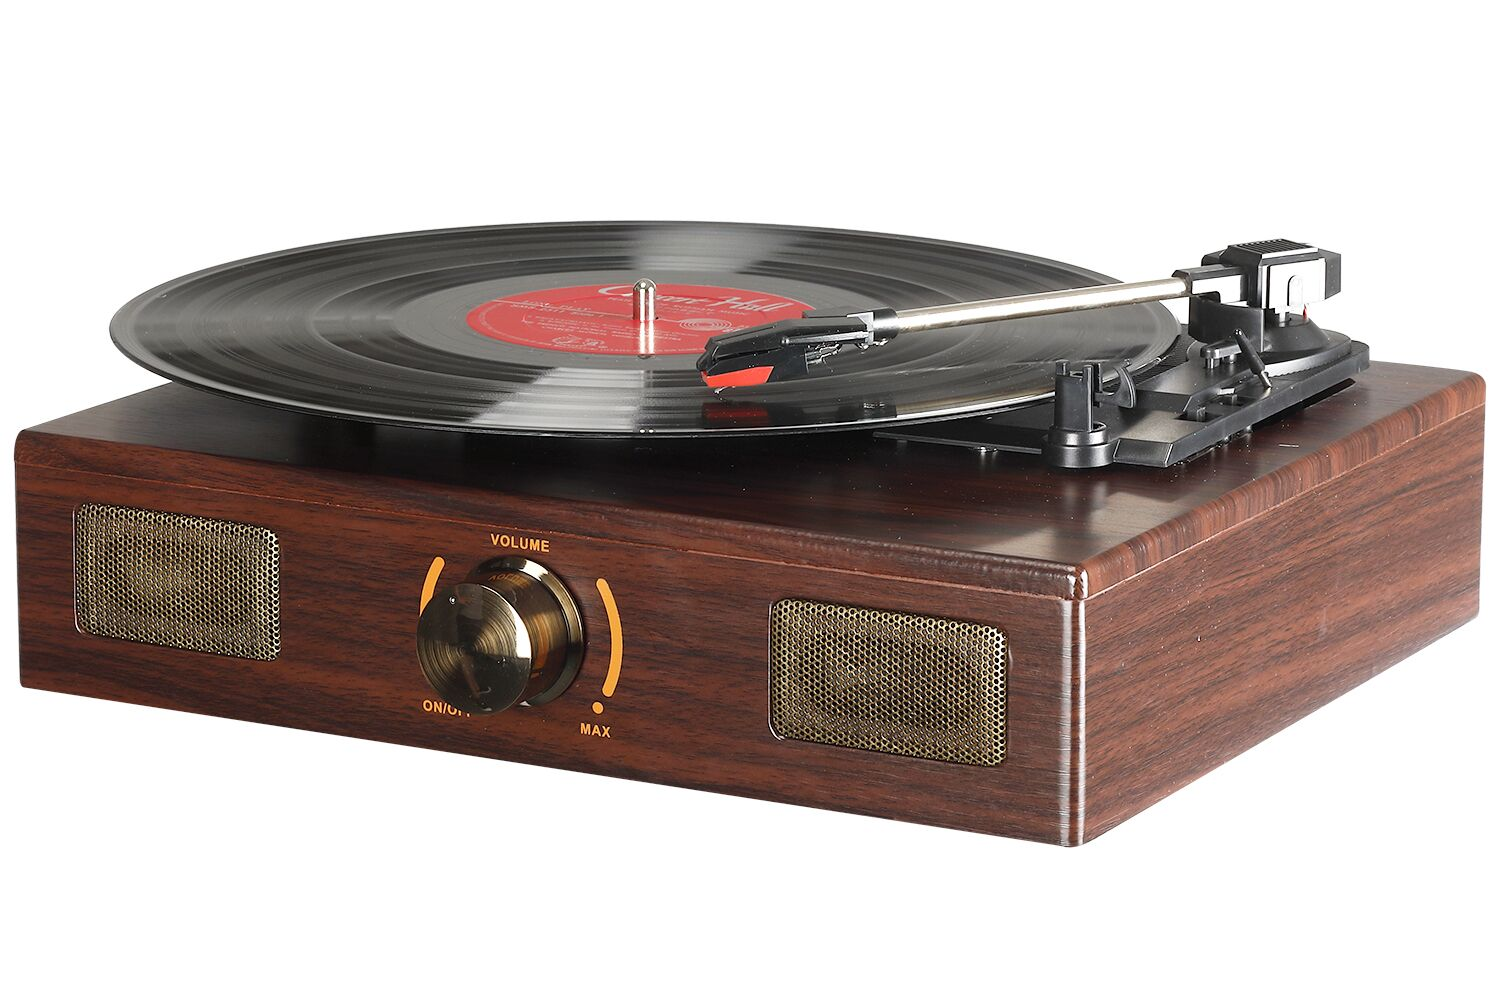 LuguLake Vinyl Record Player Turntable With Stereo 3Speed RCA Output Vintage Phonograph With Wooden Finish